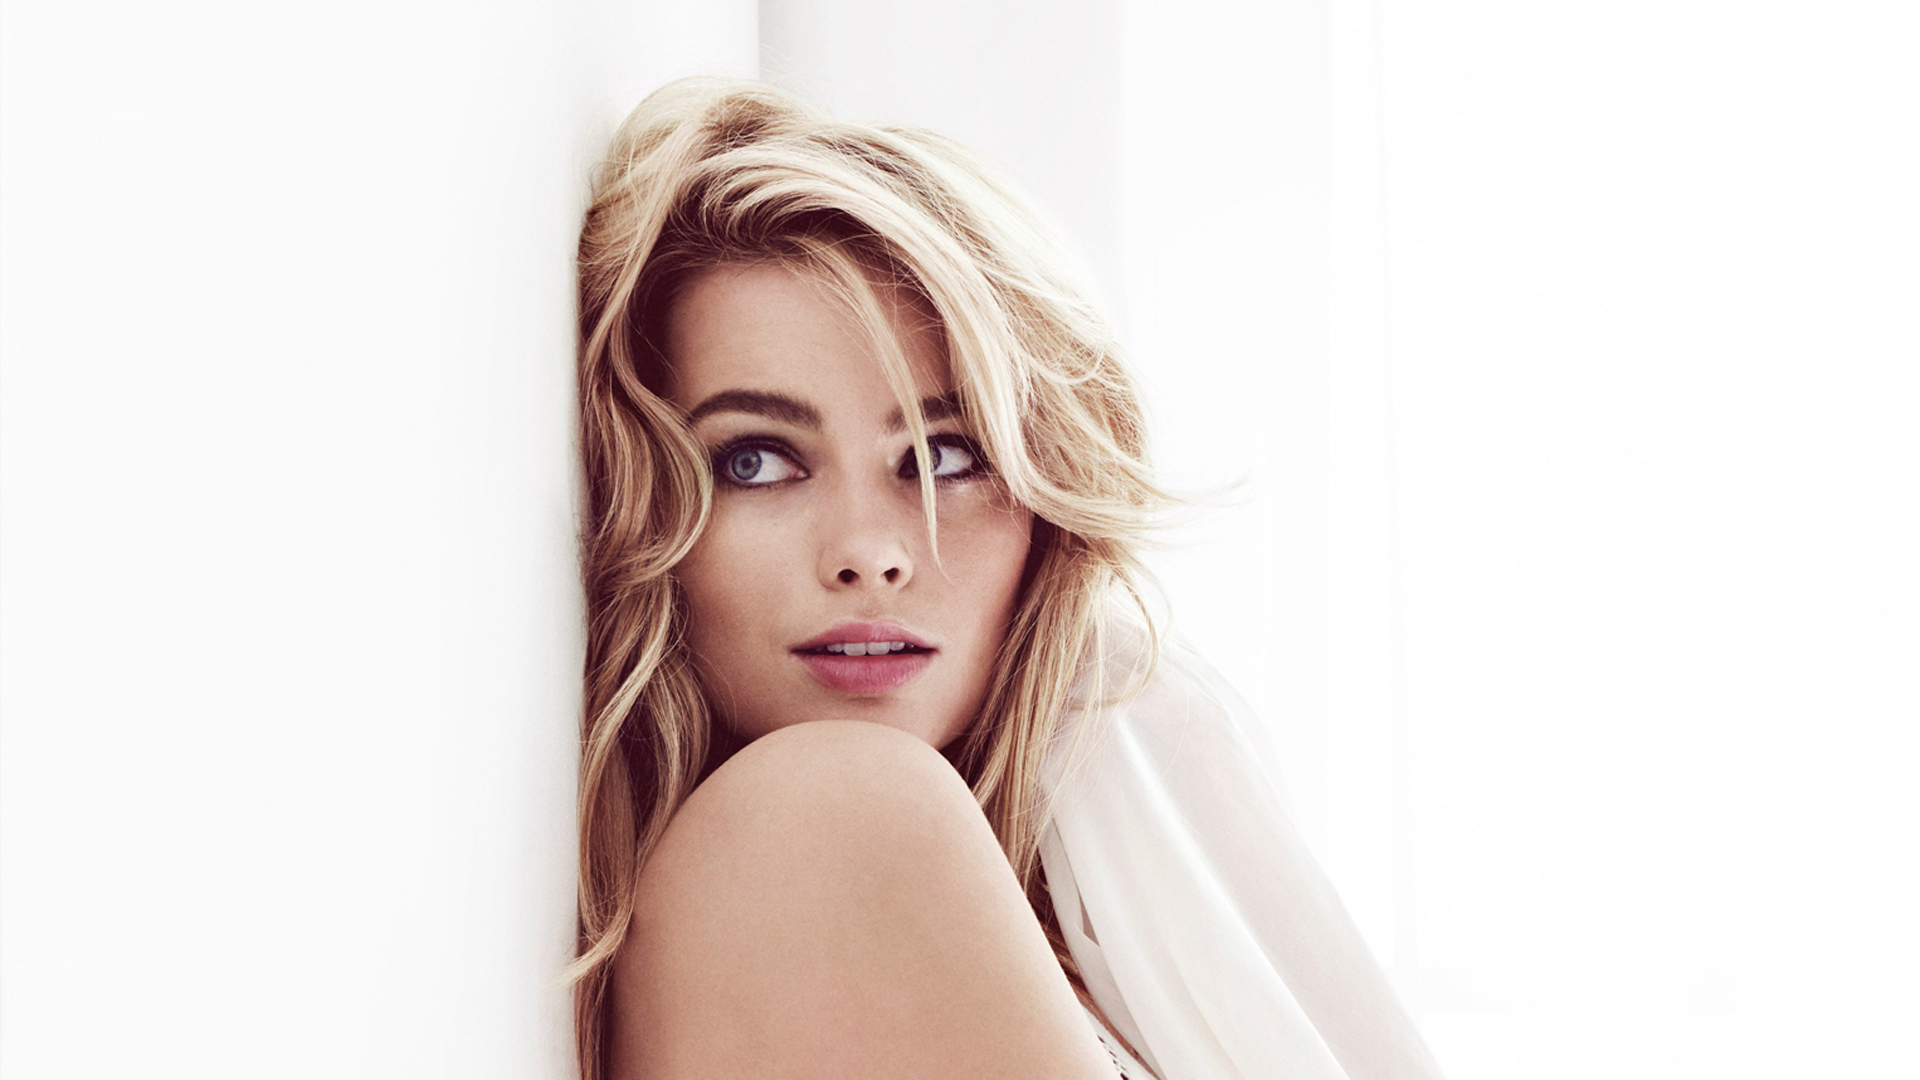 Margot Robbie Wallpapers and Background Images   stmednet 1920x1080